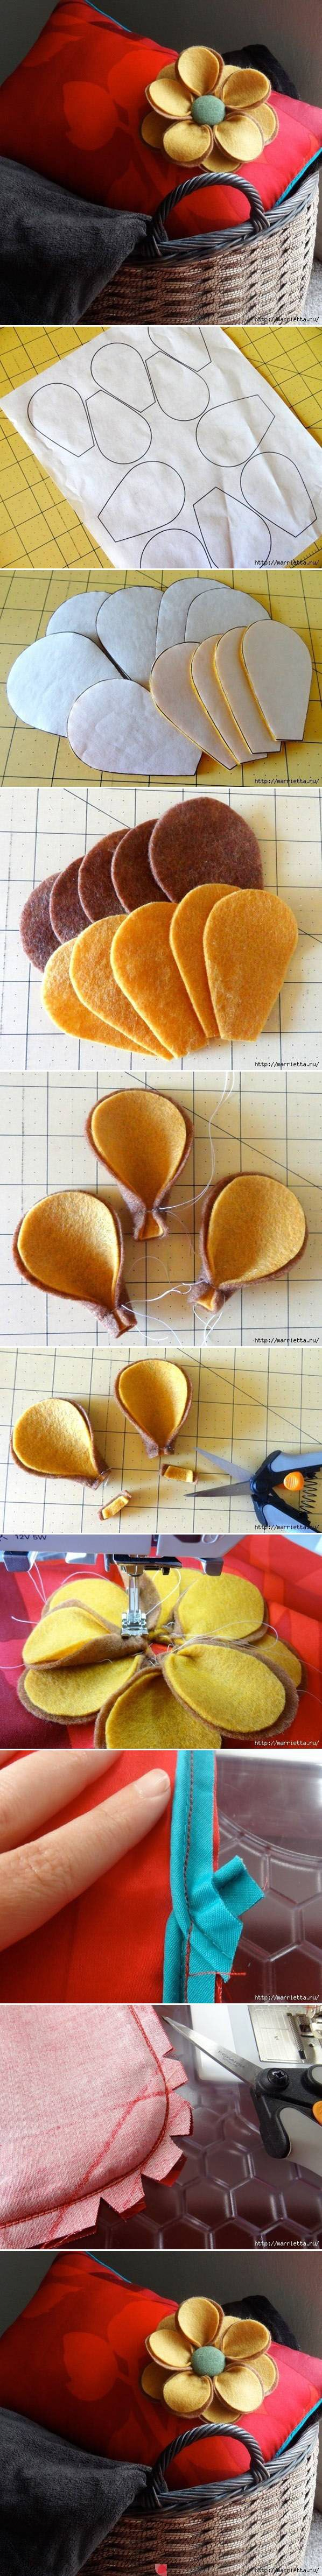 feltflower tutorial